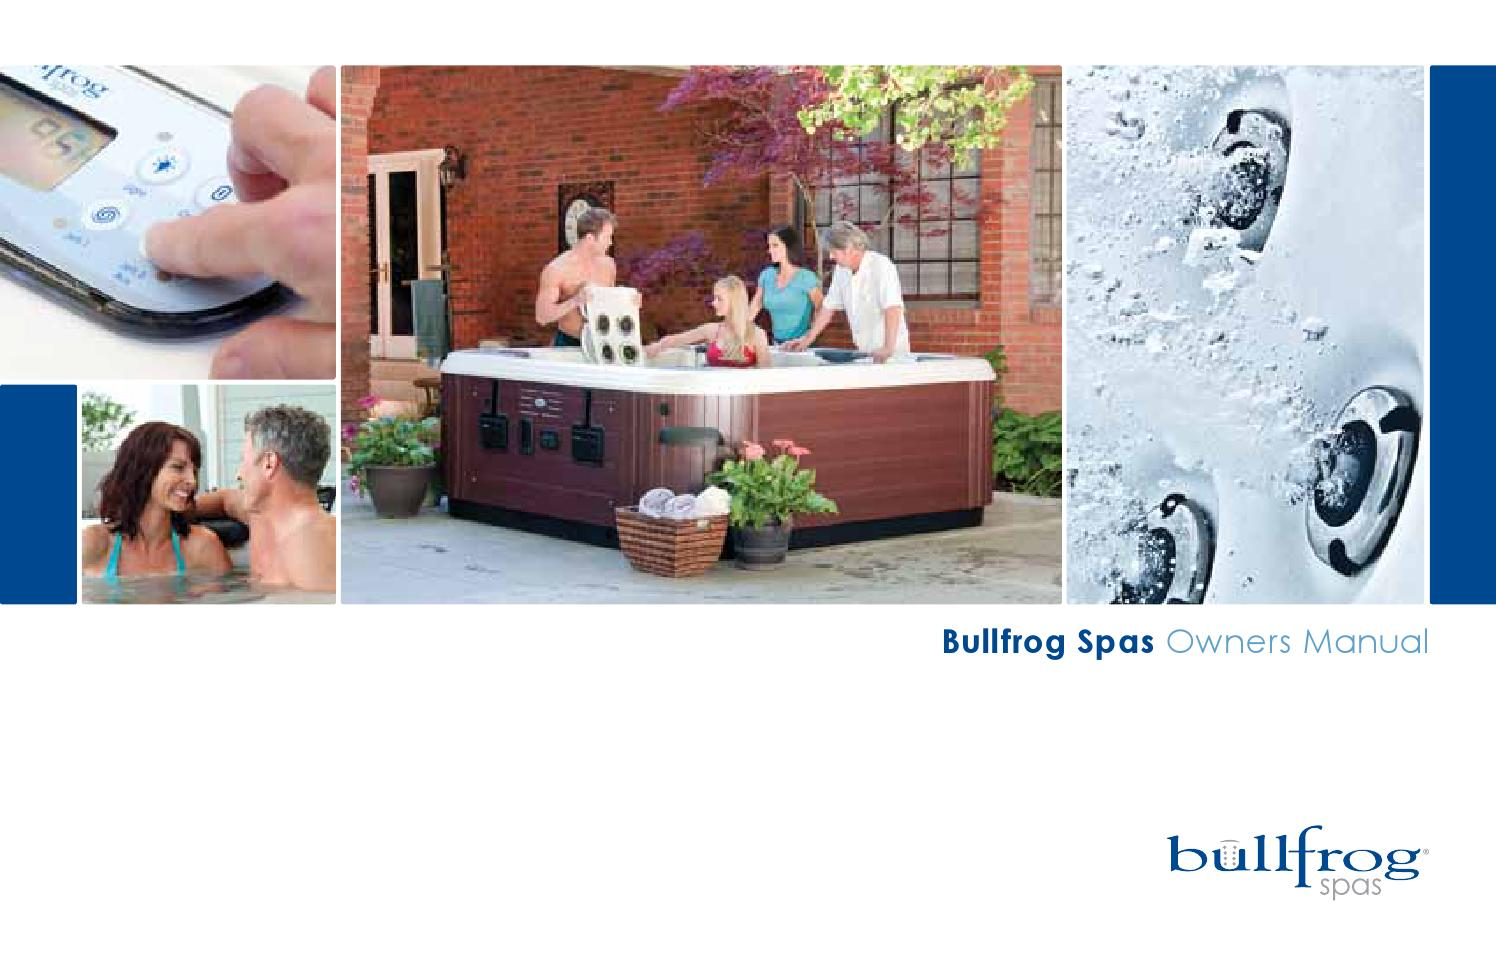 Bullfrog Manual 2012 By Envirosmarte Hot Tubs Swim Spas Issuu Cal Spa 20 Amp 240 Volt High Current Gfci The Works